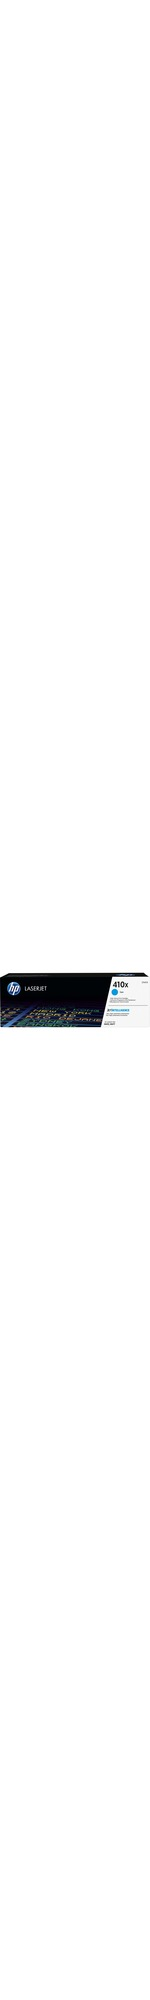 HP Original Toner Cartridge - Cyan